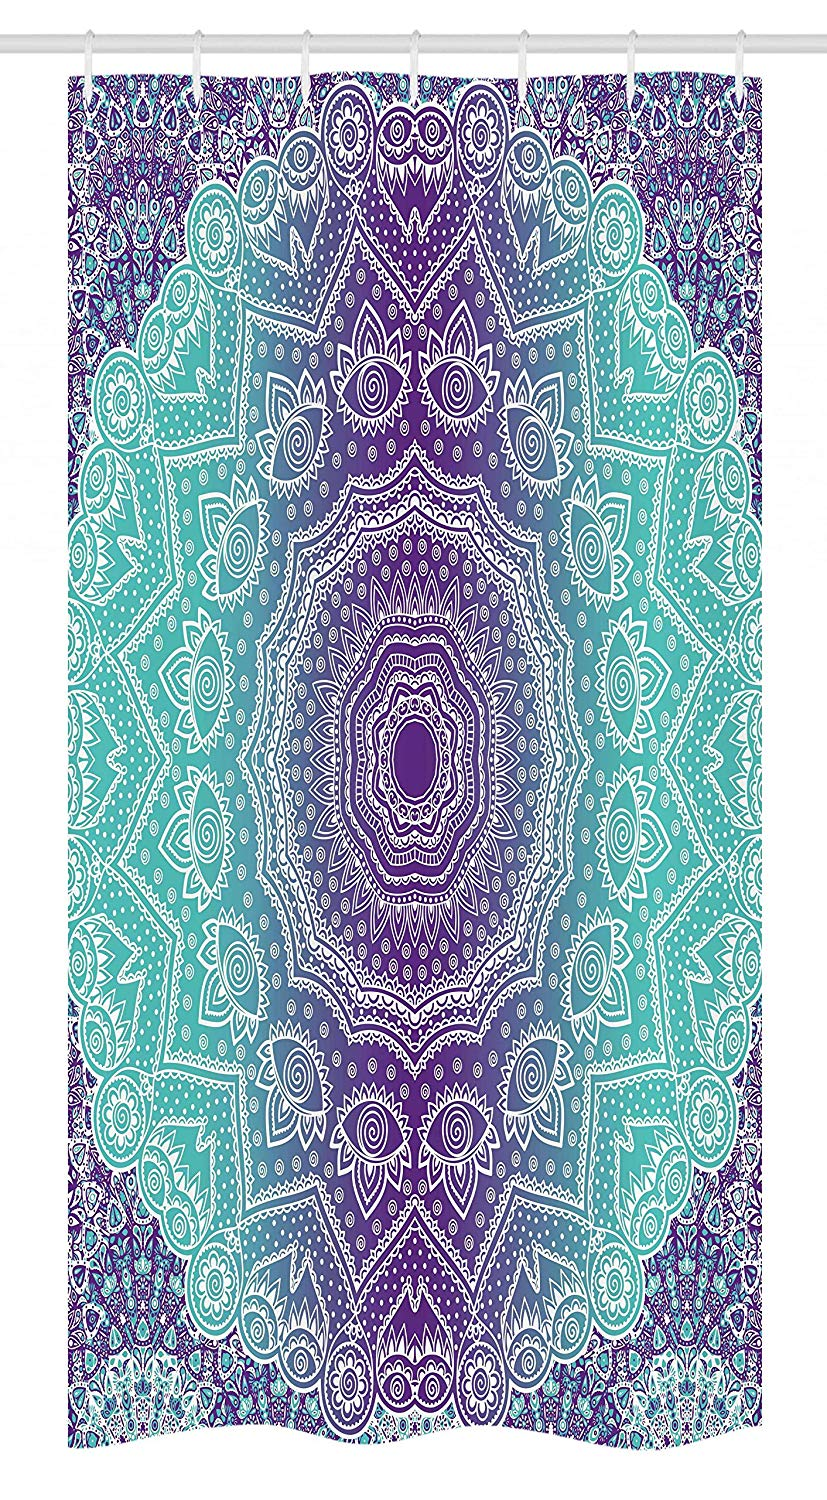 Ambesonne Purple and Turquoise Stall Shower Curtain, Hippie Ombre Mandala Inner Peace and Meditation with Ornamental Art, Fabric Bathroom Decor Set with Hooks, 36 W x 72 L Inches, Purple Aqua